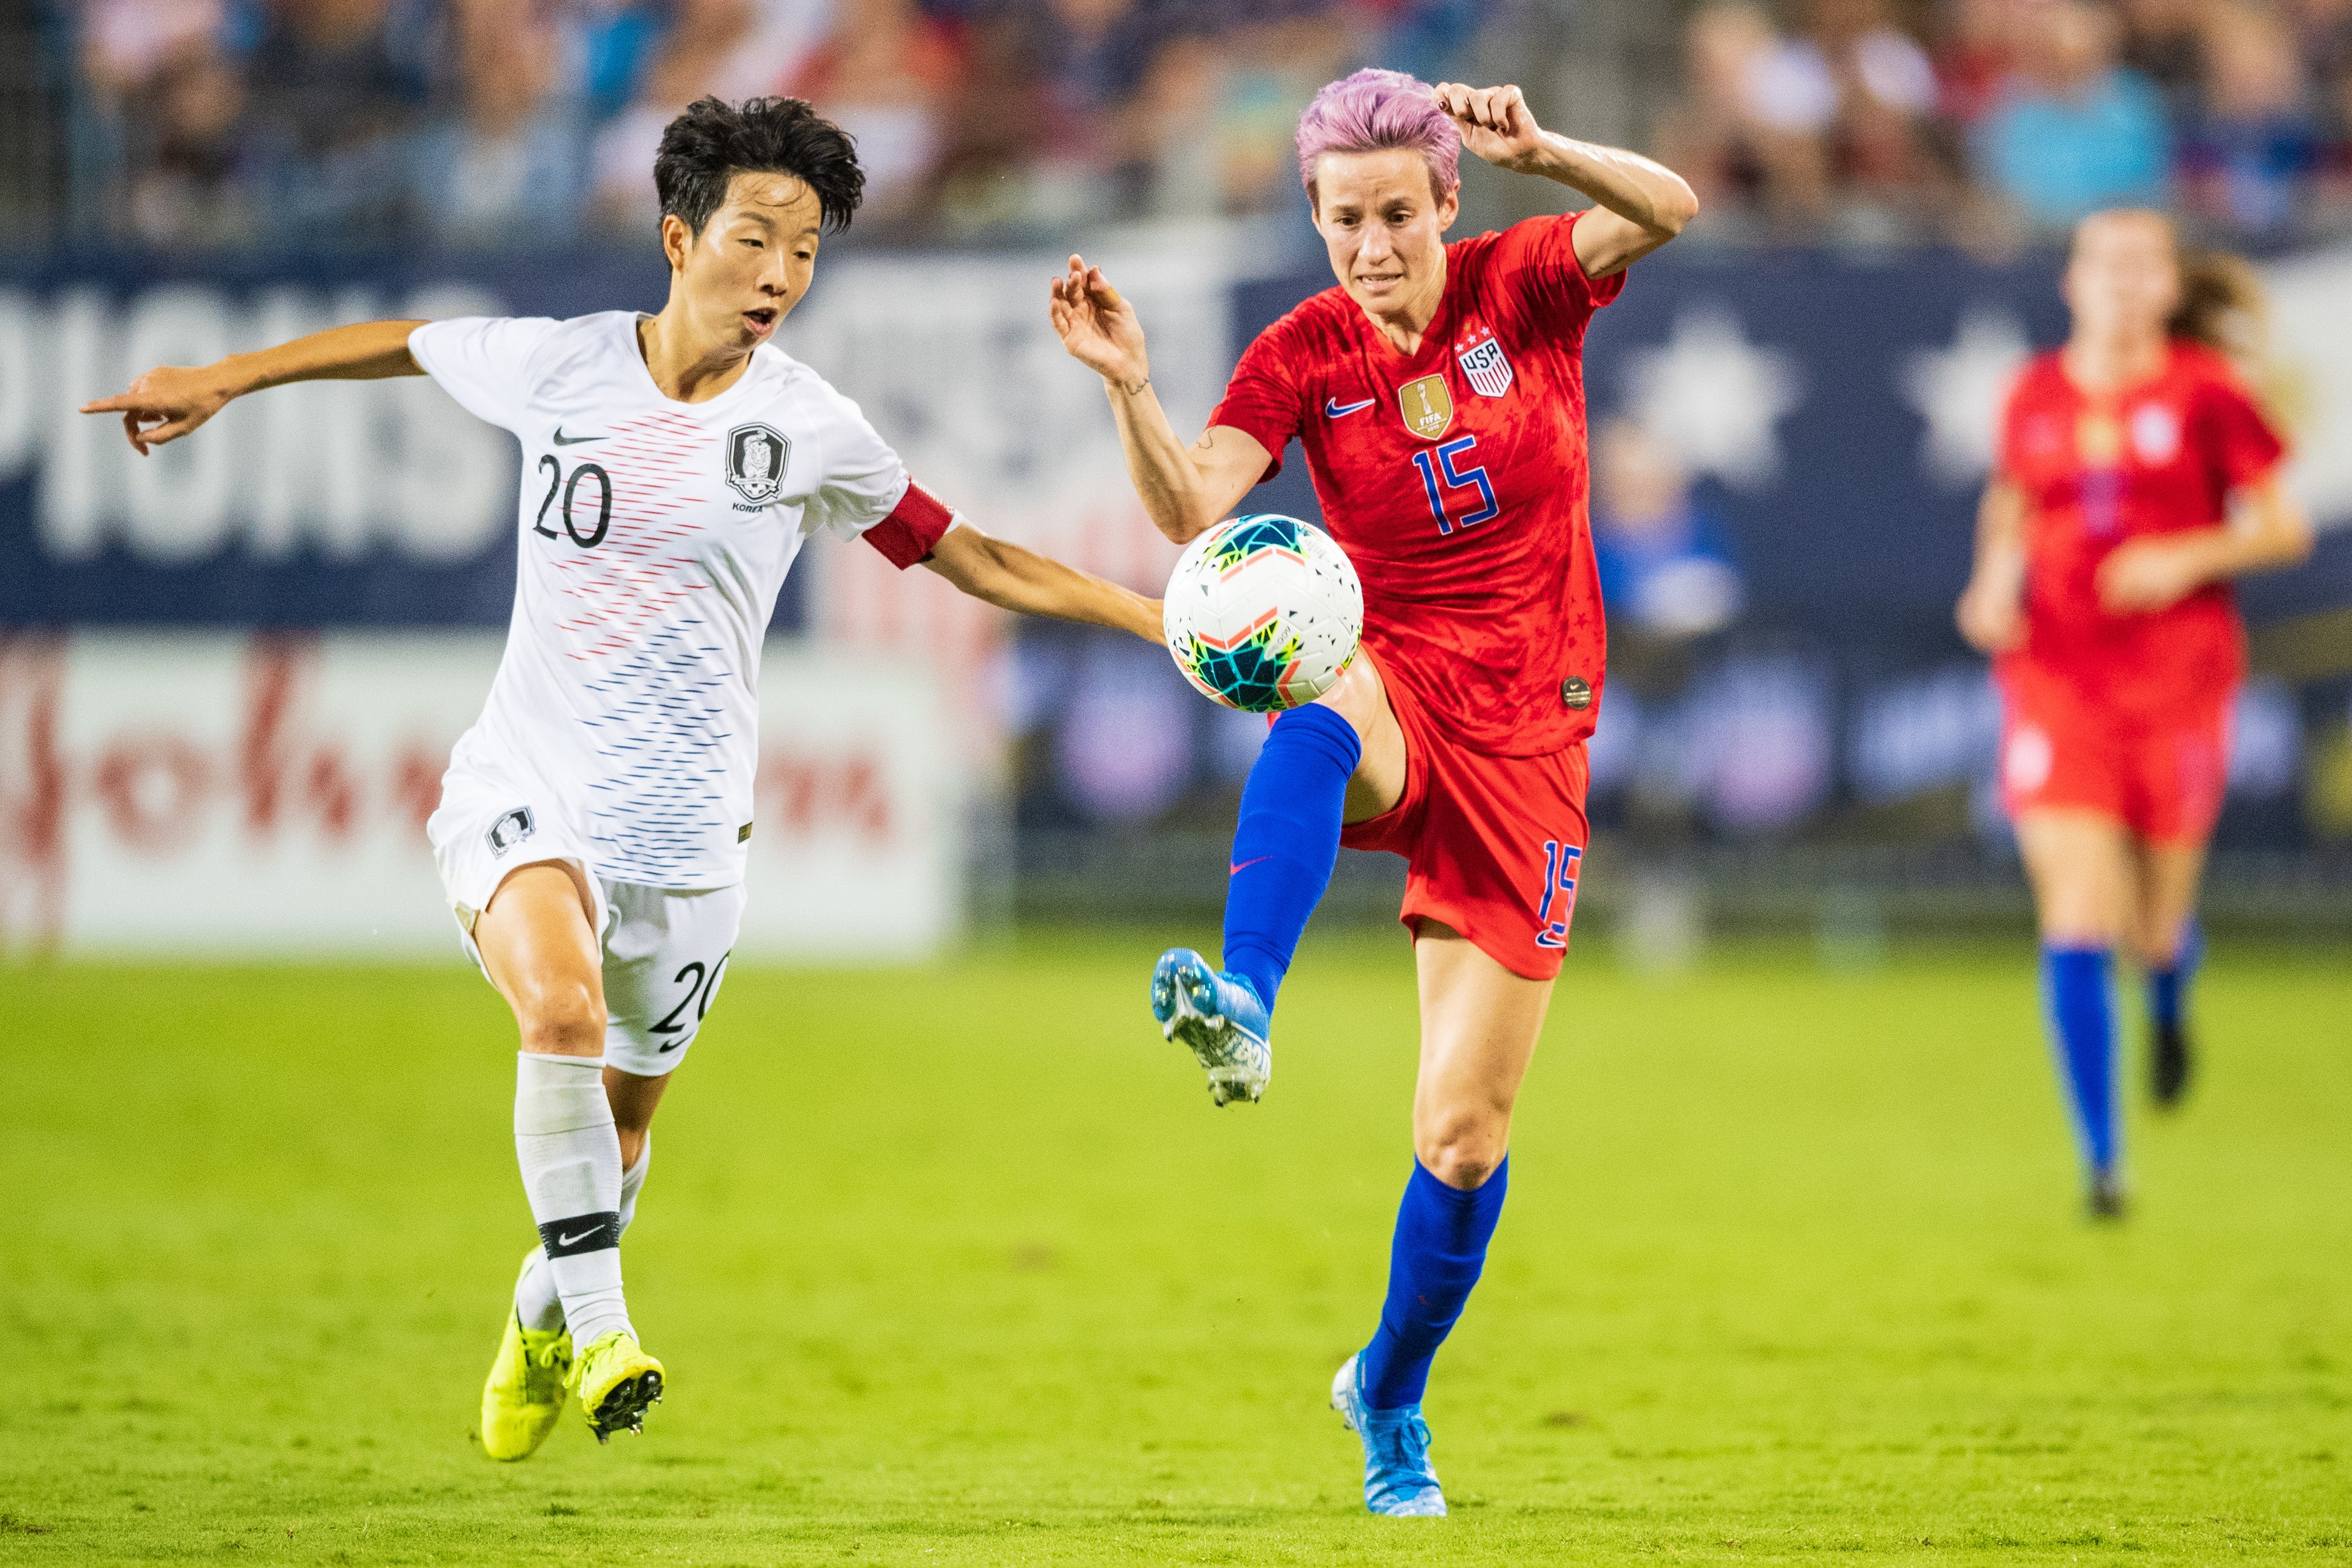 Megan Rapinoe calls Donald Trump 'completely crazy' and calls for new president in 2020